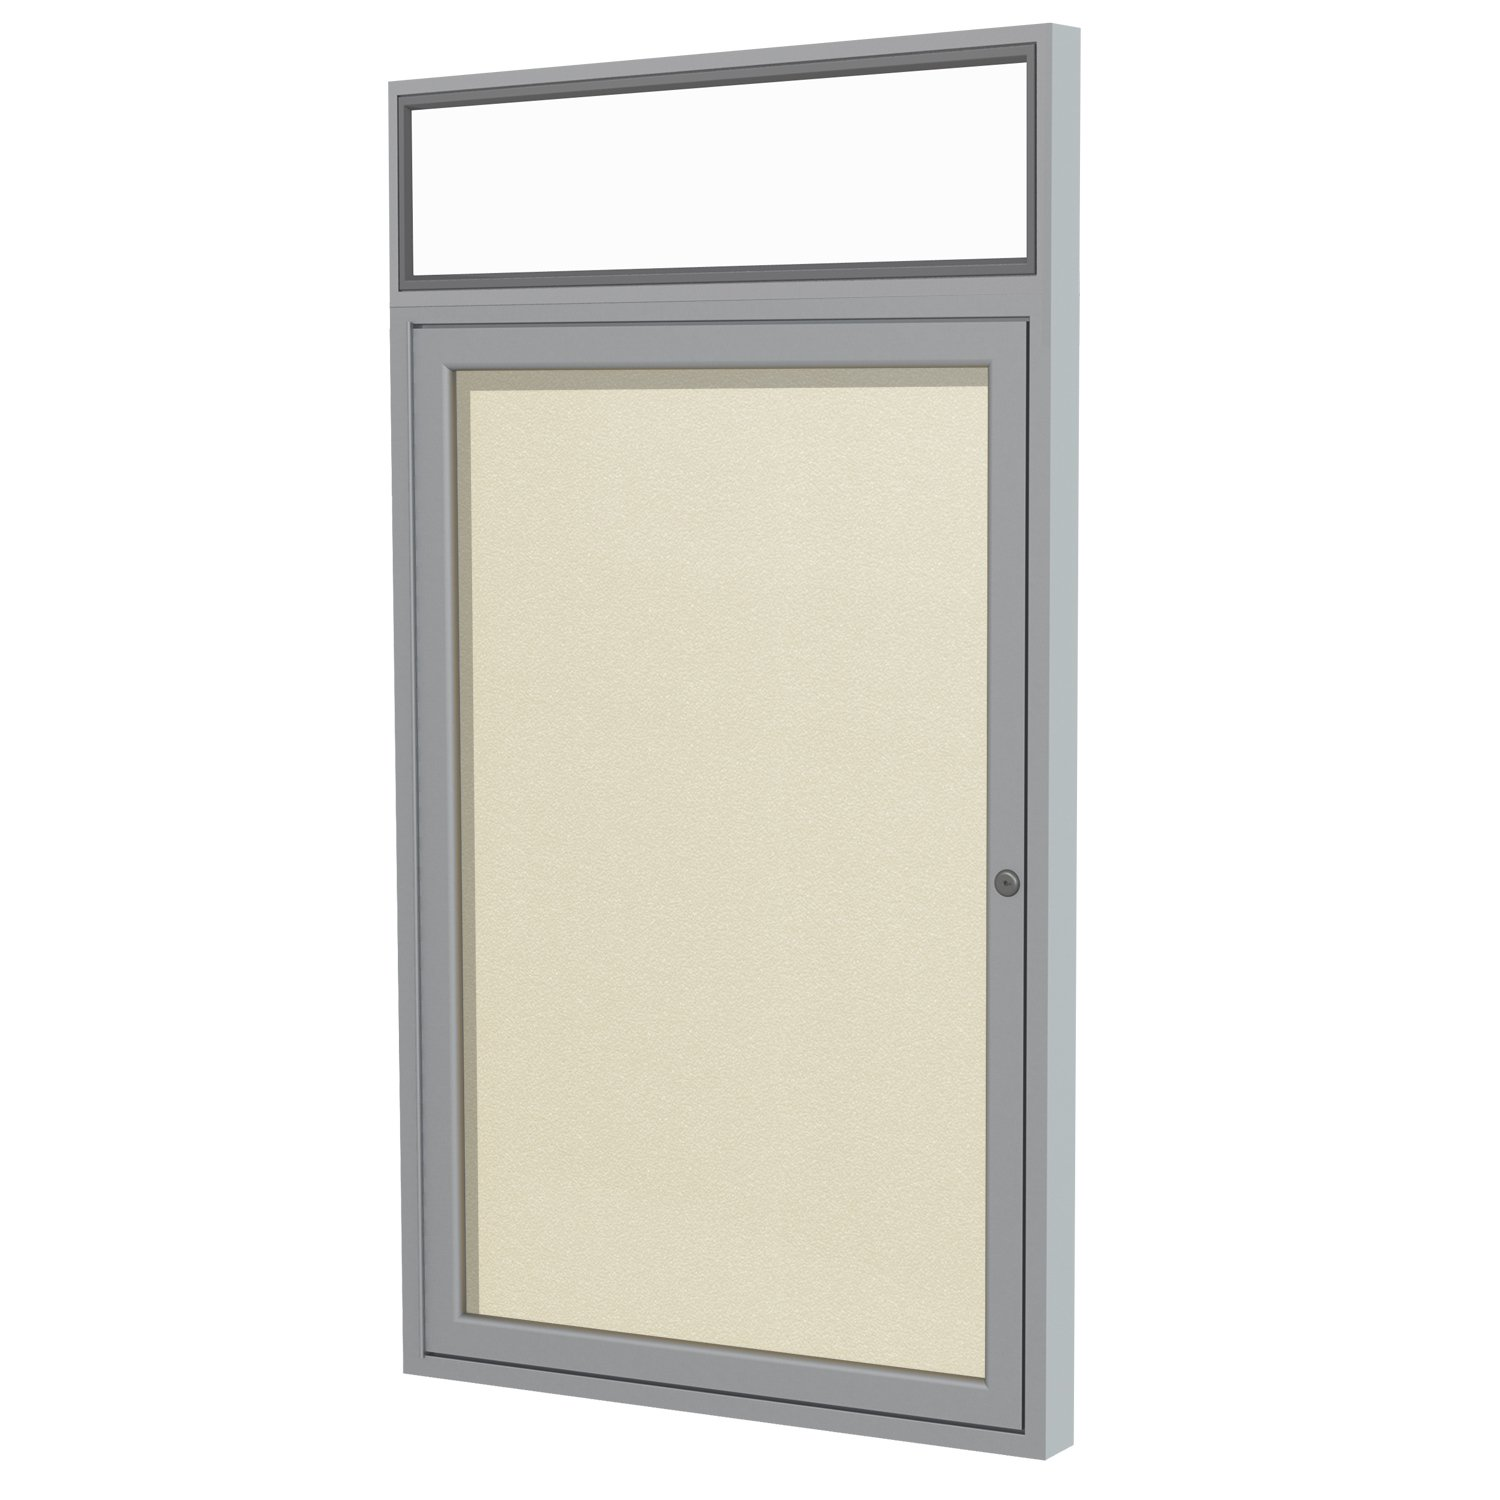 Ghent 36 x 36 Inches Outdoor Satin Frame Enclosed Vinyl Bulletin Board with Headliner , Ivory , Made in the USA